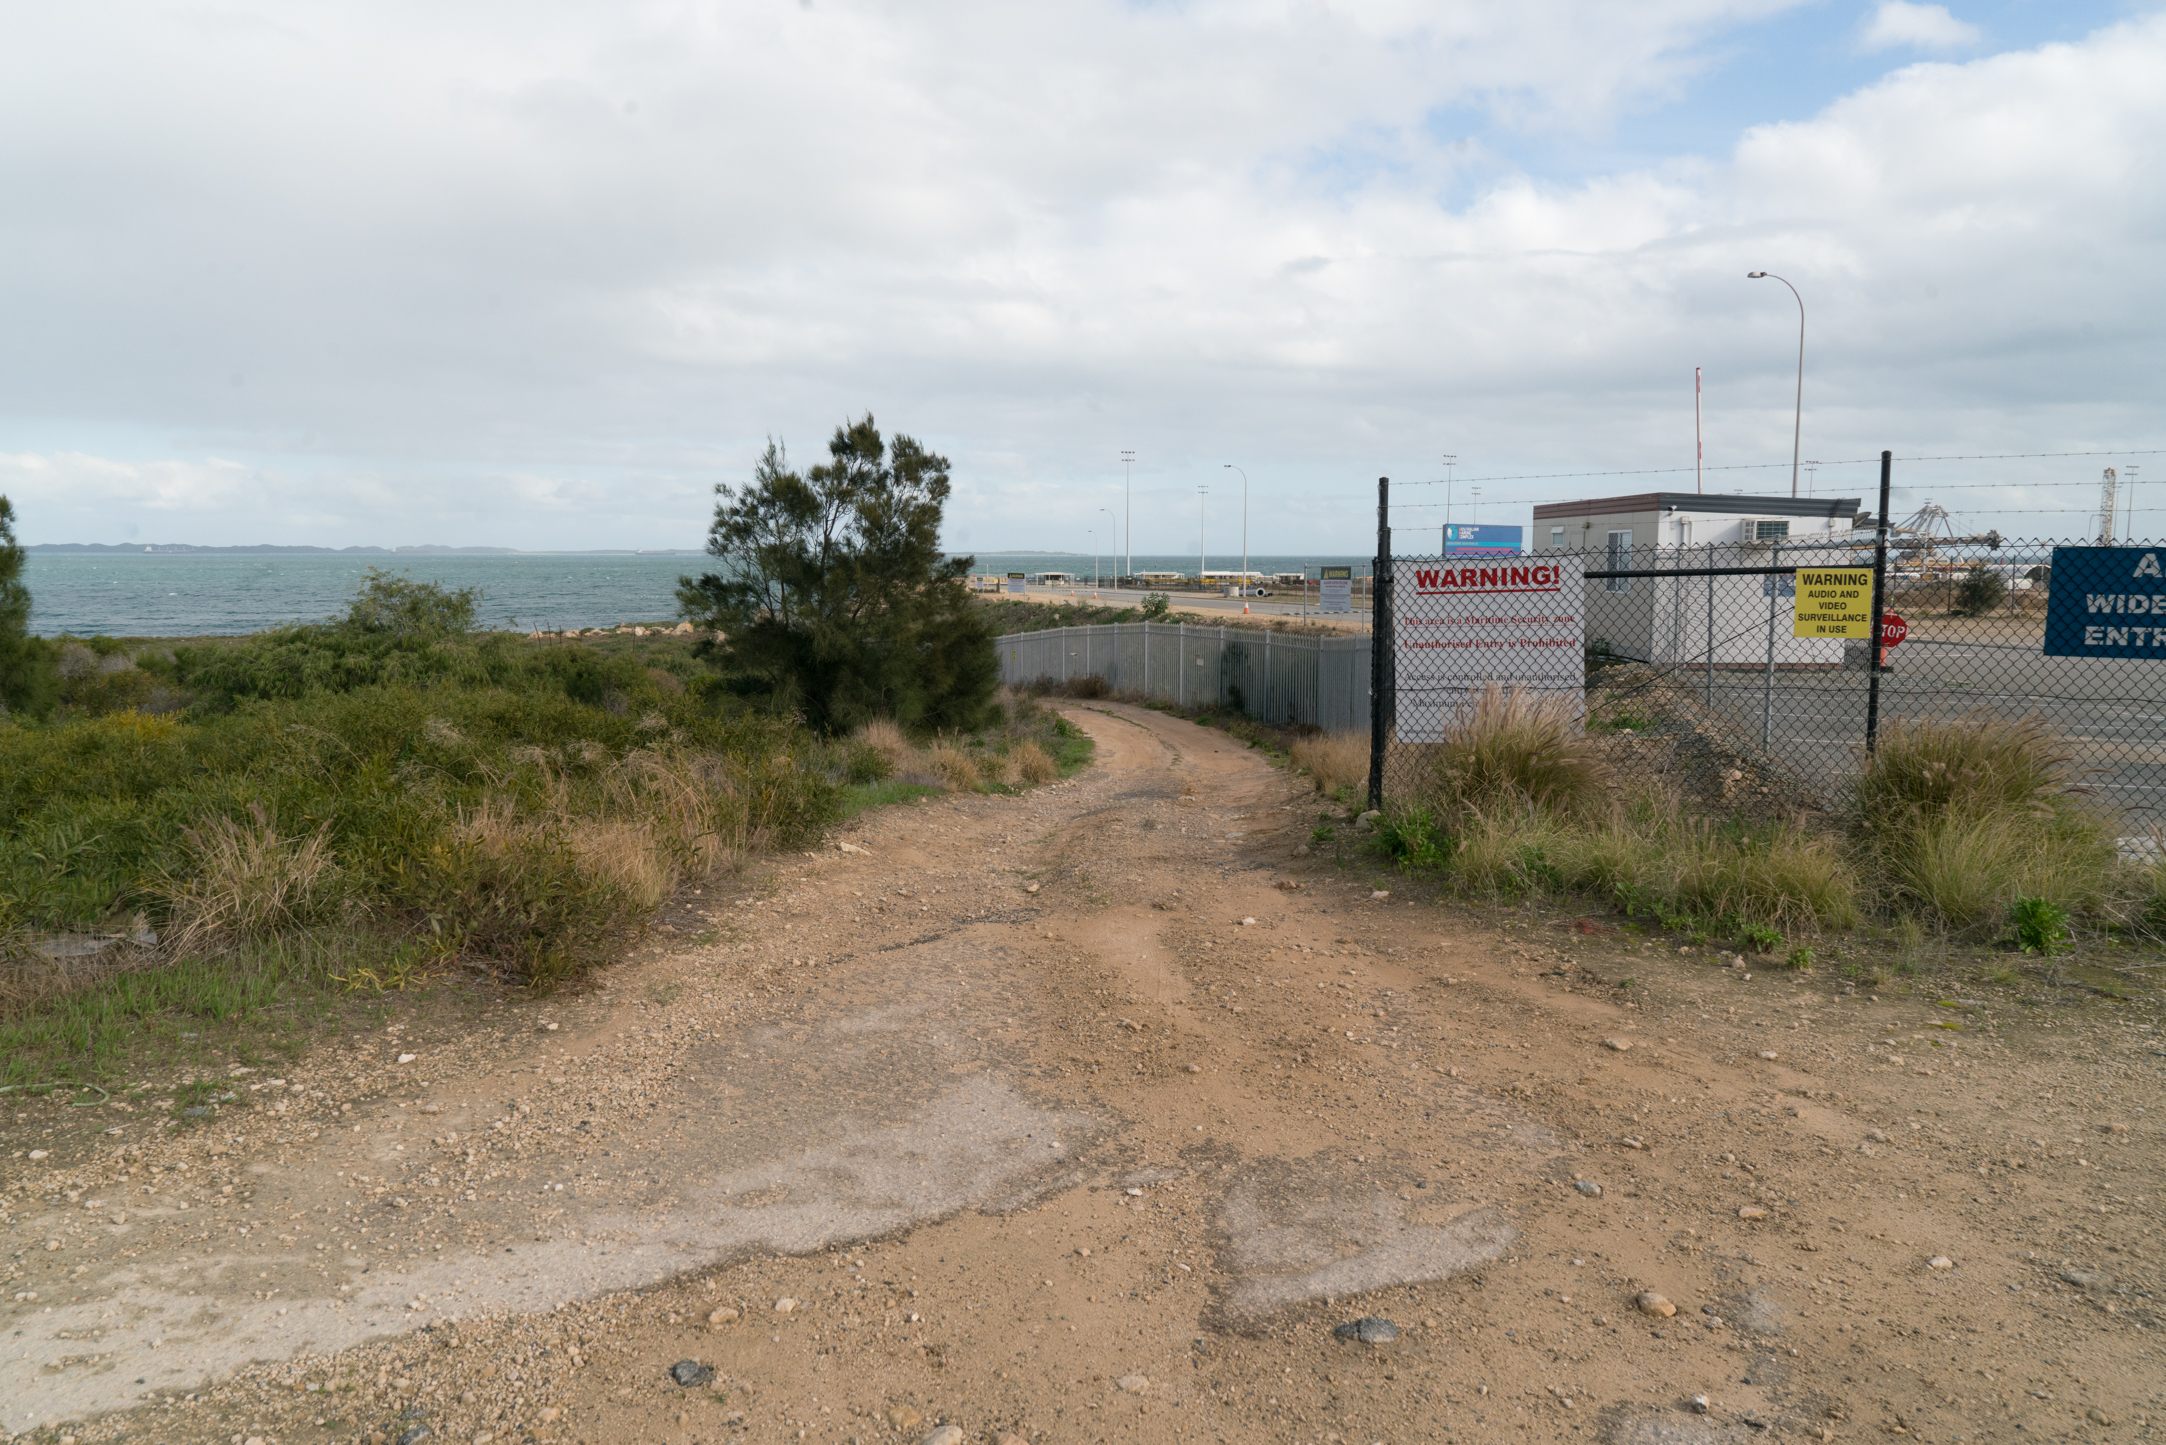 Plate 6: The track next to the boundary fence